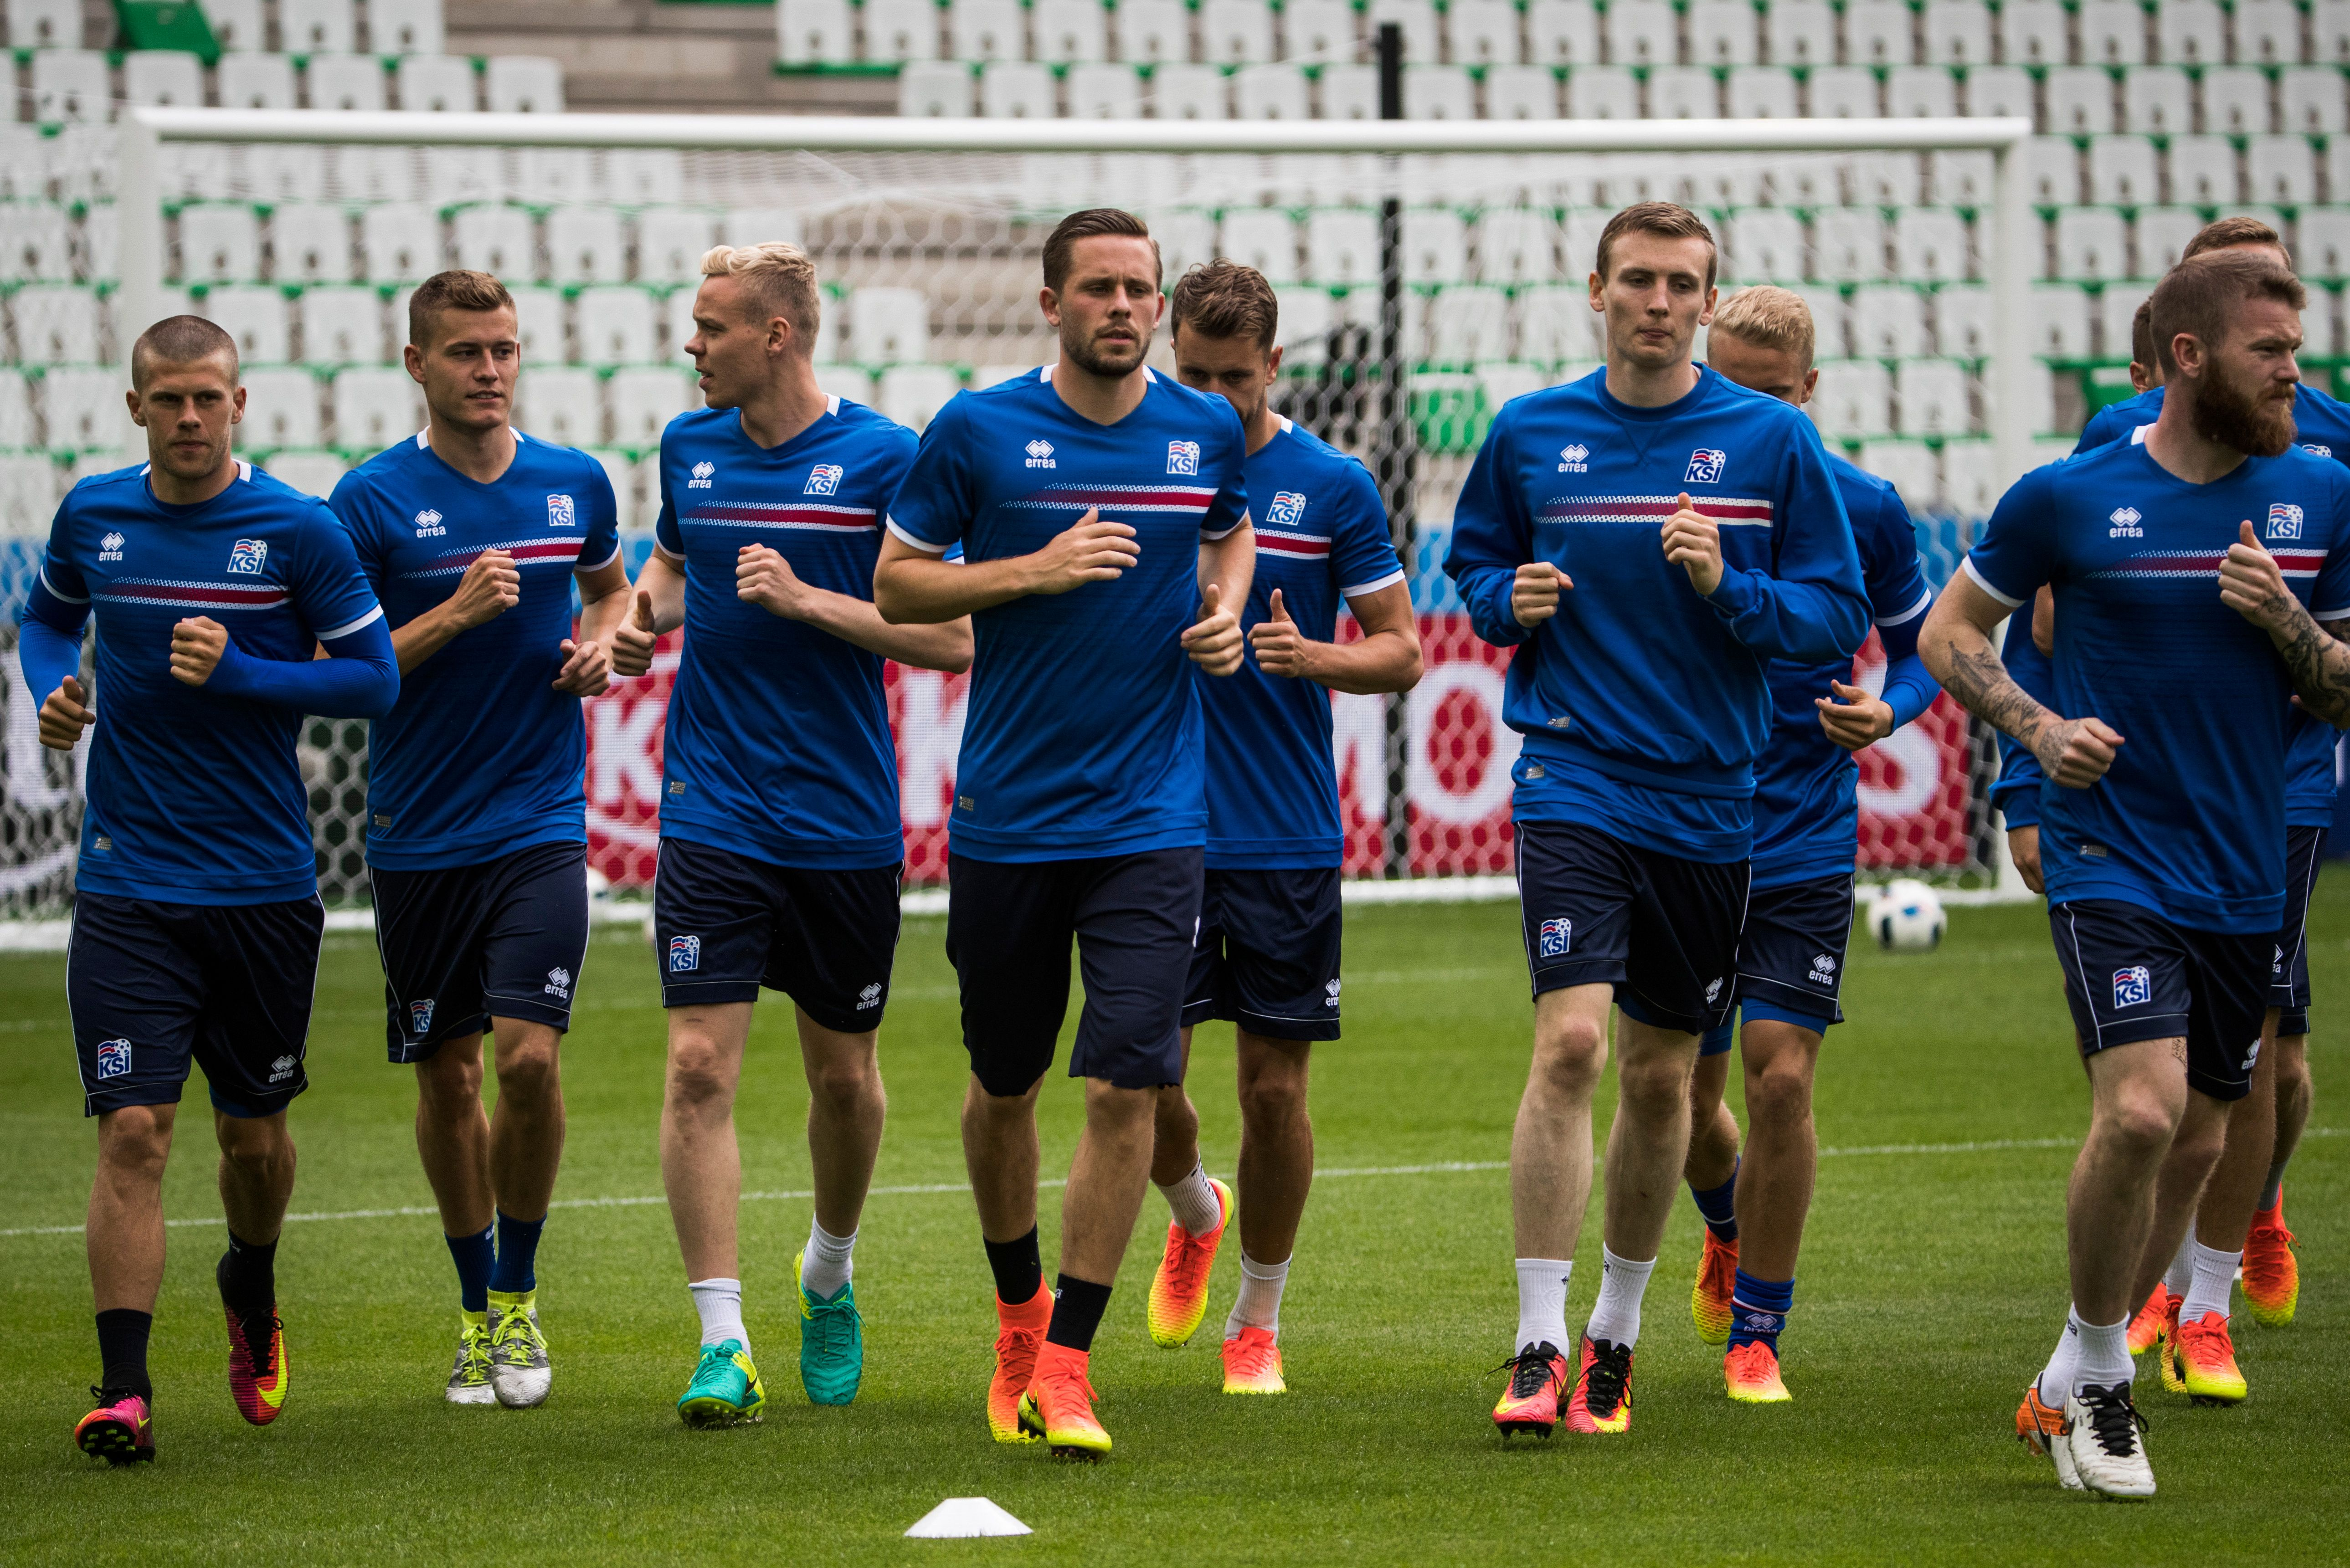 Iceland's midfielder Gylfi Sigurdsson (4th L) and team mates warm up during a Euro 2016 training session at the Geoffroy-Guichard stadium in St Etienne, on June 13, 2016, on the eve of their opening match against Portugal. / AFP / ODD ANDERSEN        (Photo credit should read )